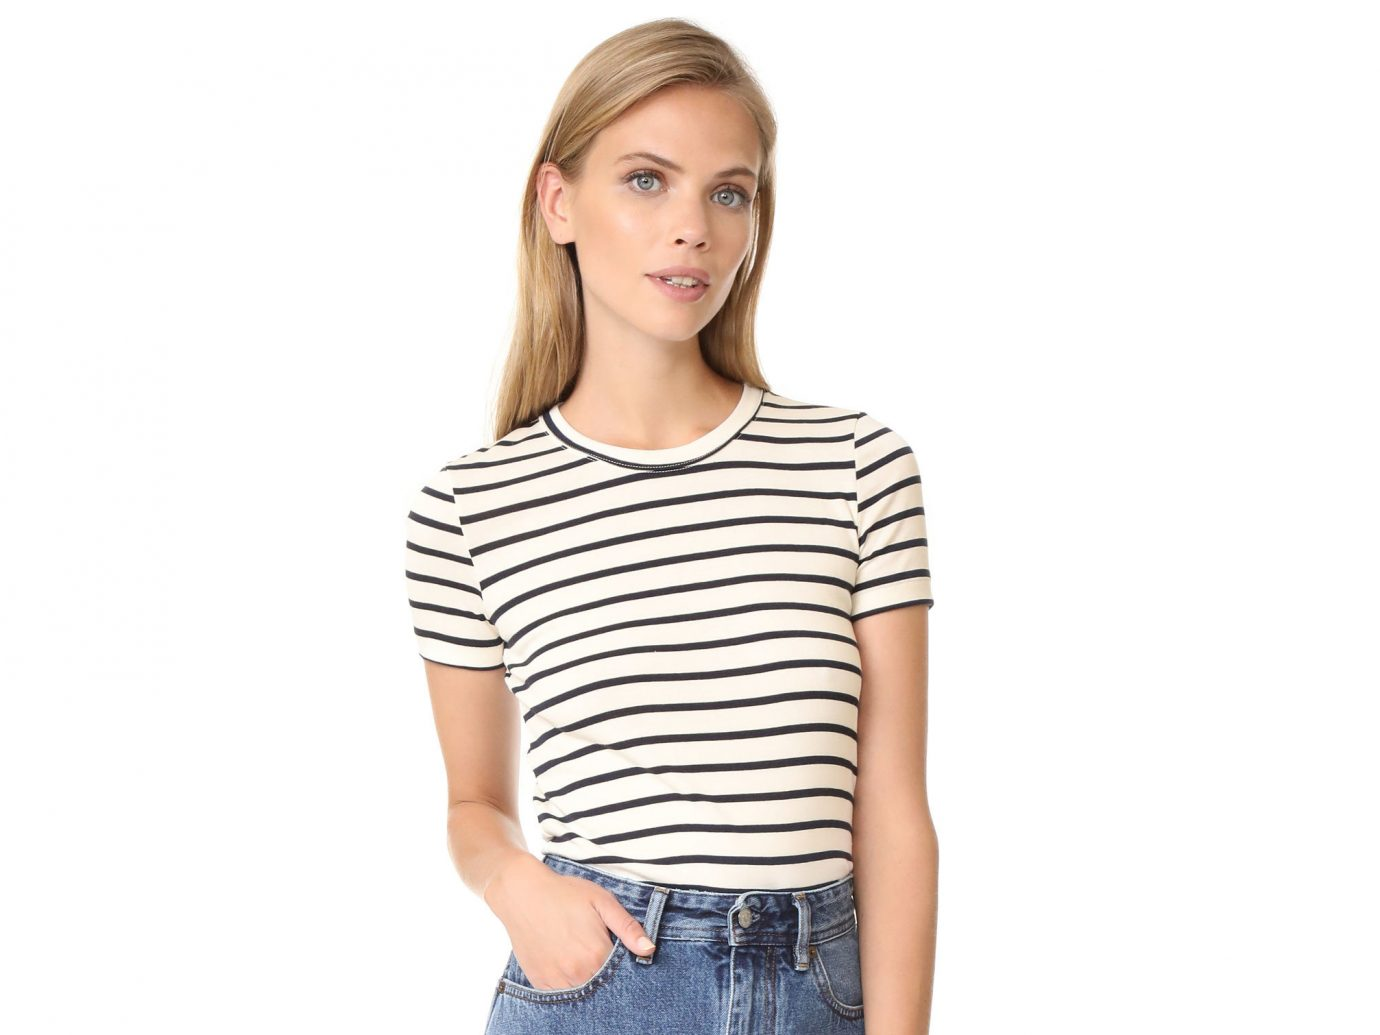 Style + Design Travel Shop person clothing sleeve t shirt shoulder neck young fashion model joint striped posing product long sleeved t shirt top